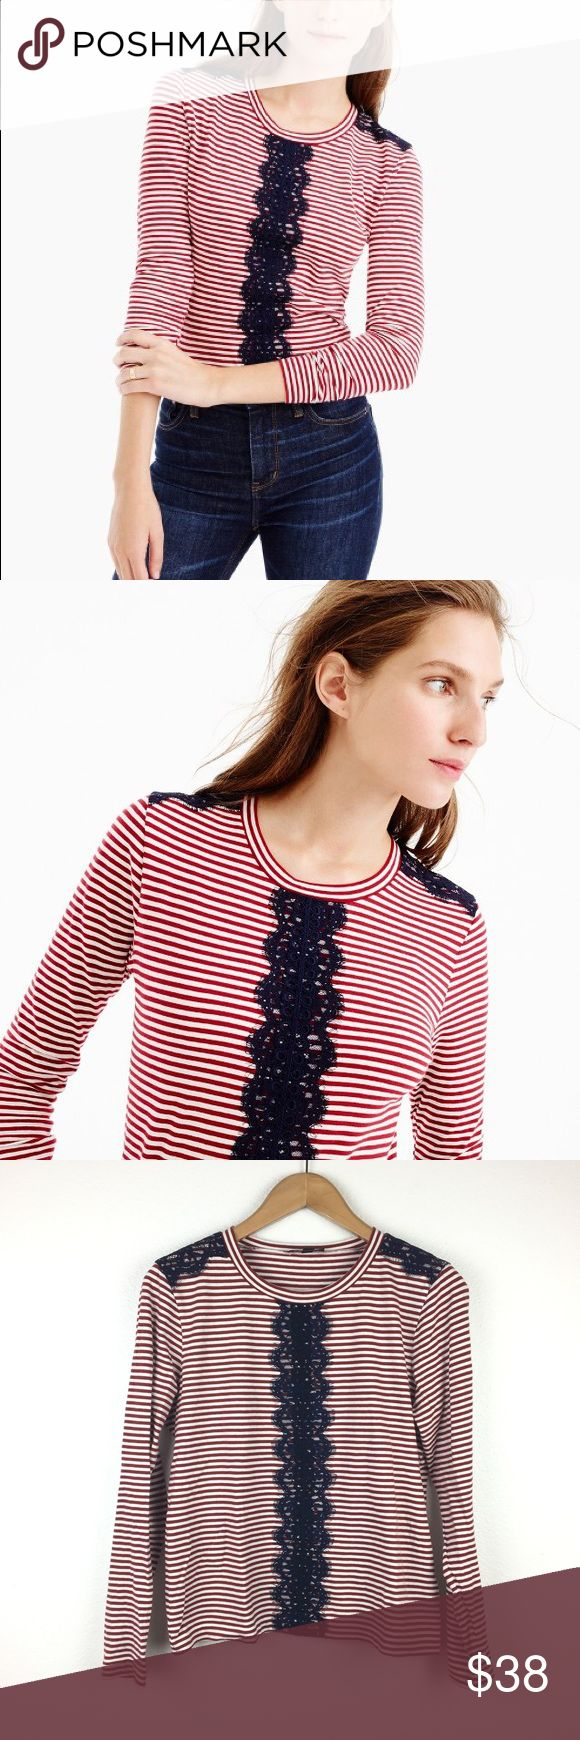 J.Crew Red Striped Blue Navy Long Sleeve Tee 80% cotton, 20% Linen. Dressy-Casual. Red and white striped long sleeve shirt with navy blue lace detailing. Round neckline. Slightly loose fit. Excellent condition. J. Crew Tops Tees - Long Sleeve